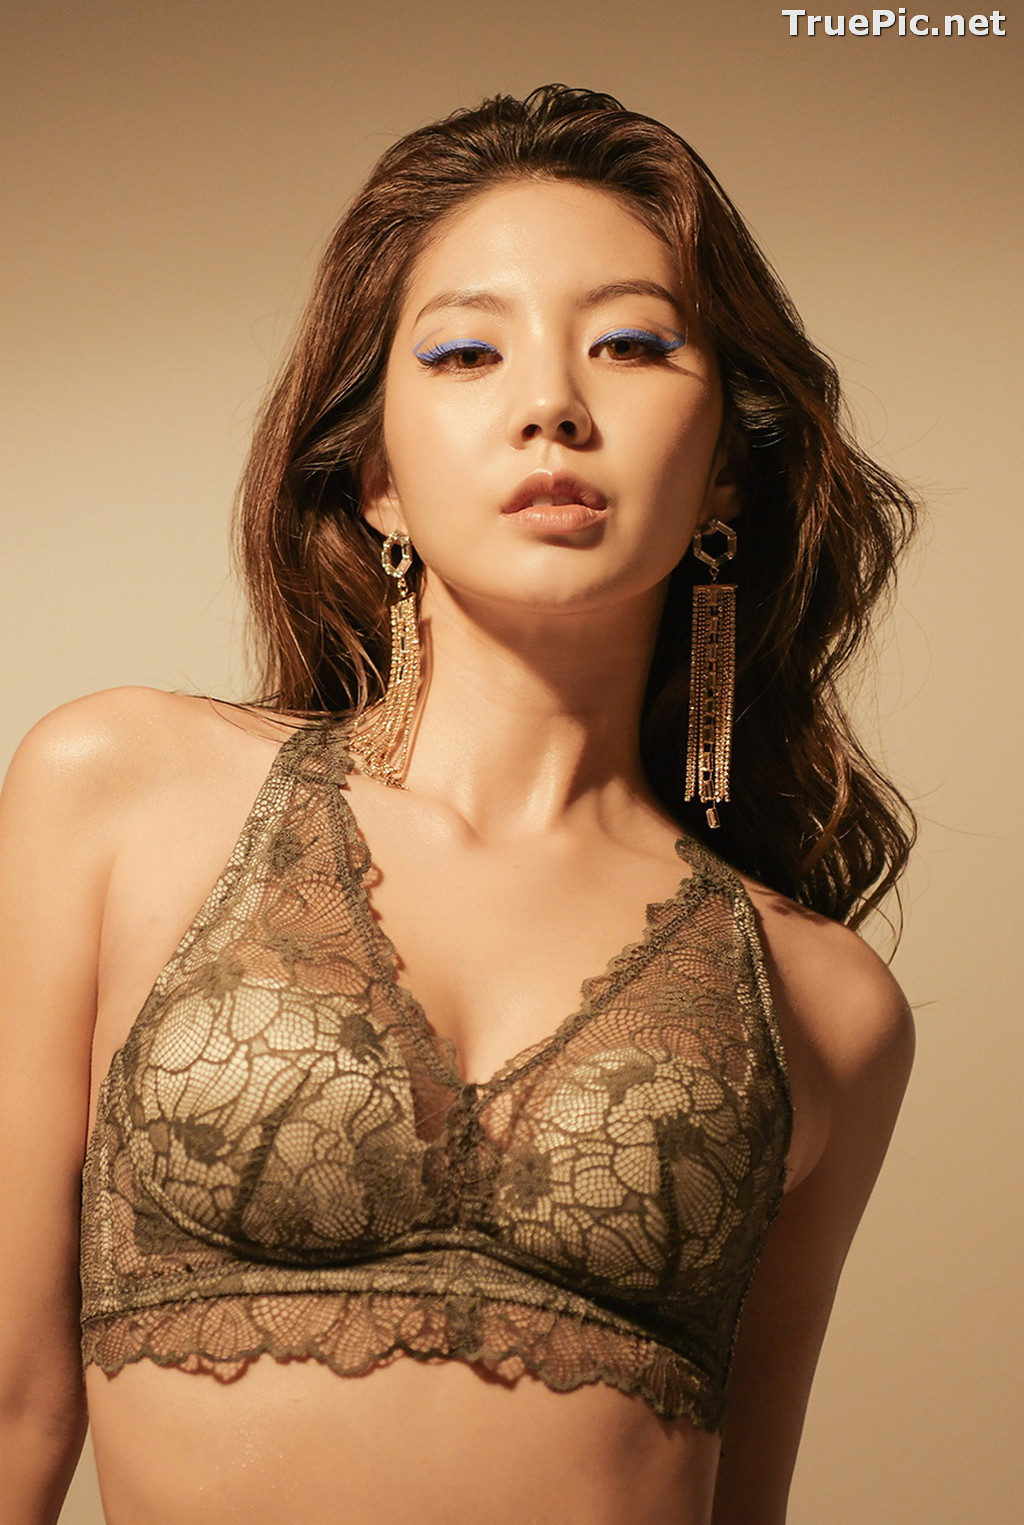 Image Korean Fashion Model - Lee Chae Eun - Soft Brown Lingerie - TruePic.net - Picture-4